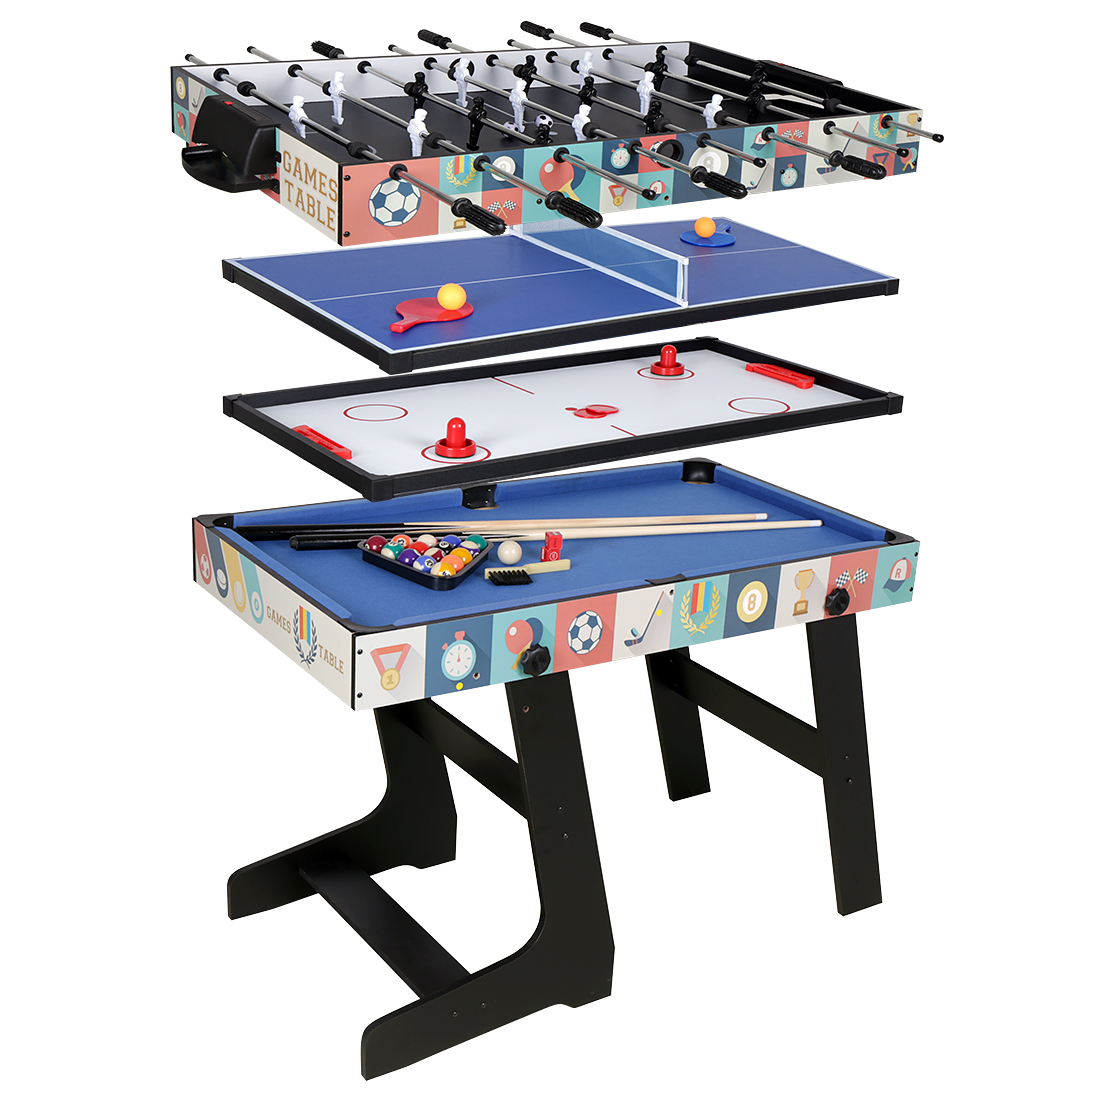 4 In 1 Folding Game Table Football/Push Hockey/Table Tennis/Pool Table